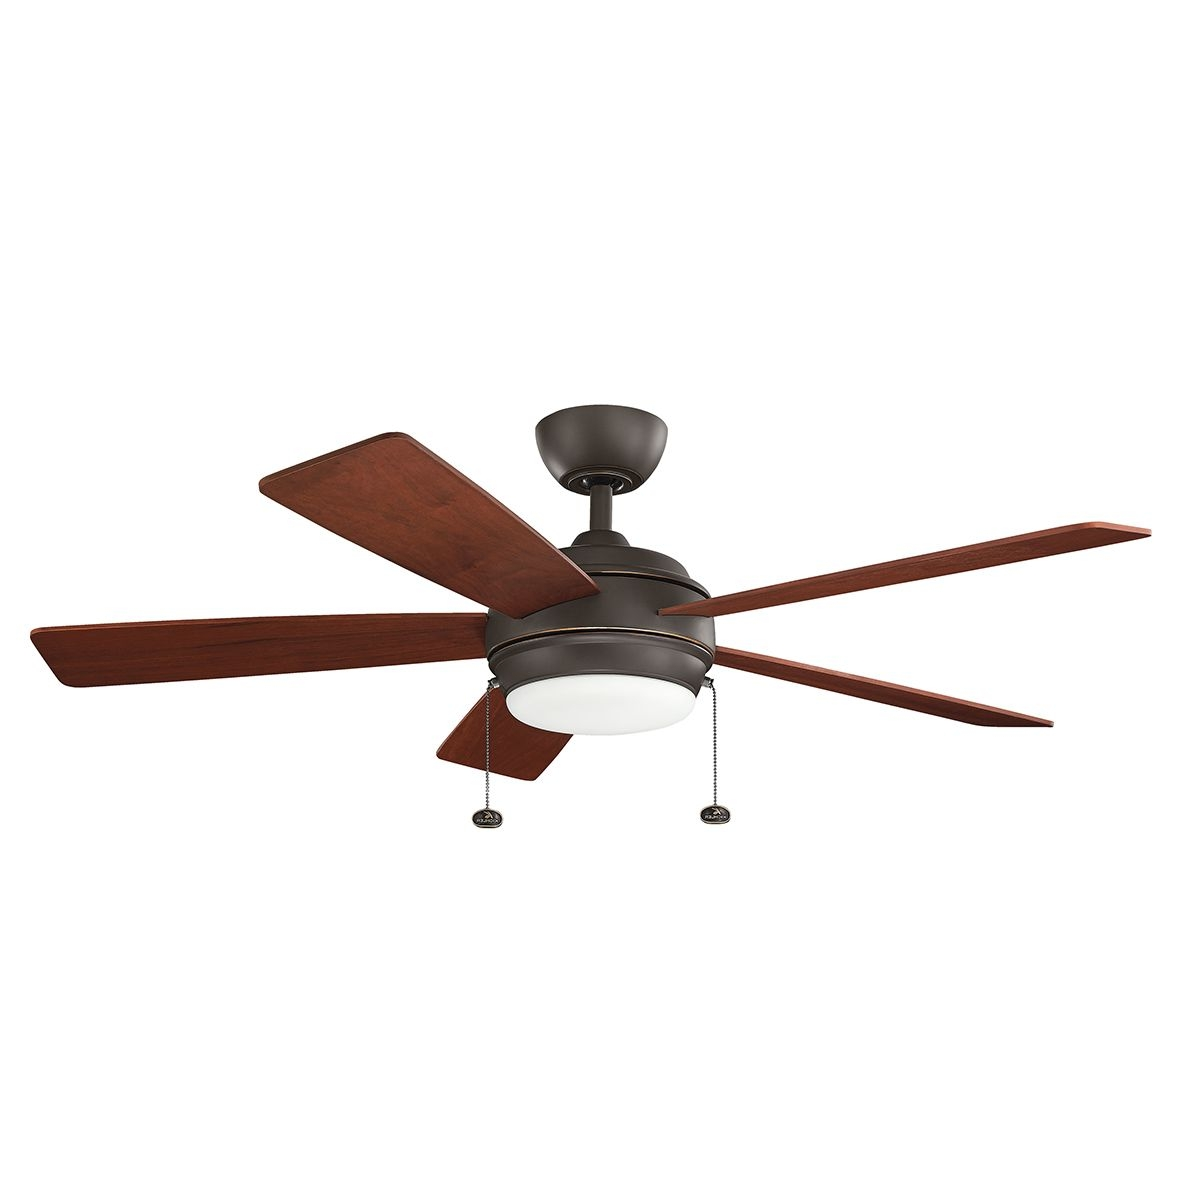 Kmart Outdoor Ceiling Fans Throughout Recent Hugger 52 In Black Ceiling Fan Awesome Modern White Ceiling Fans (View 7 of 20)